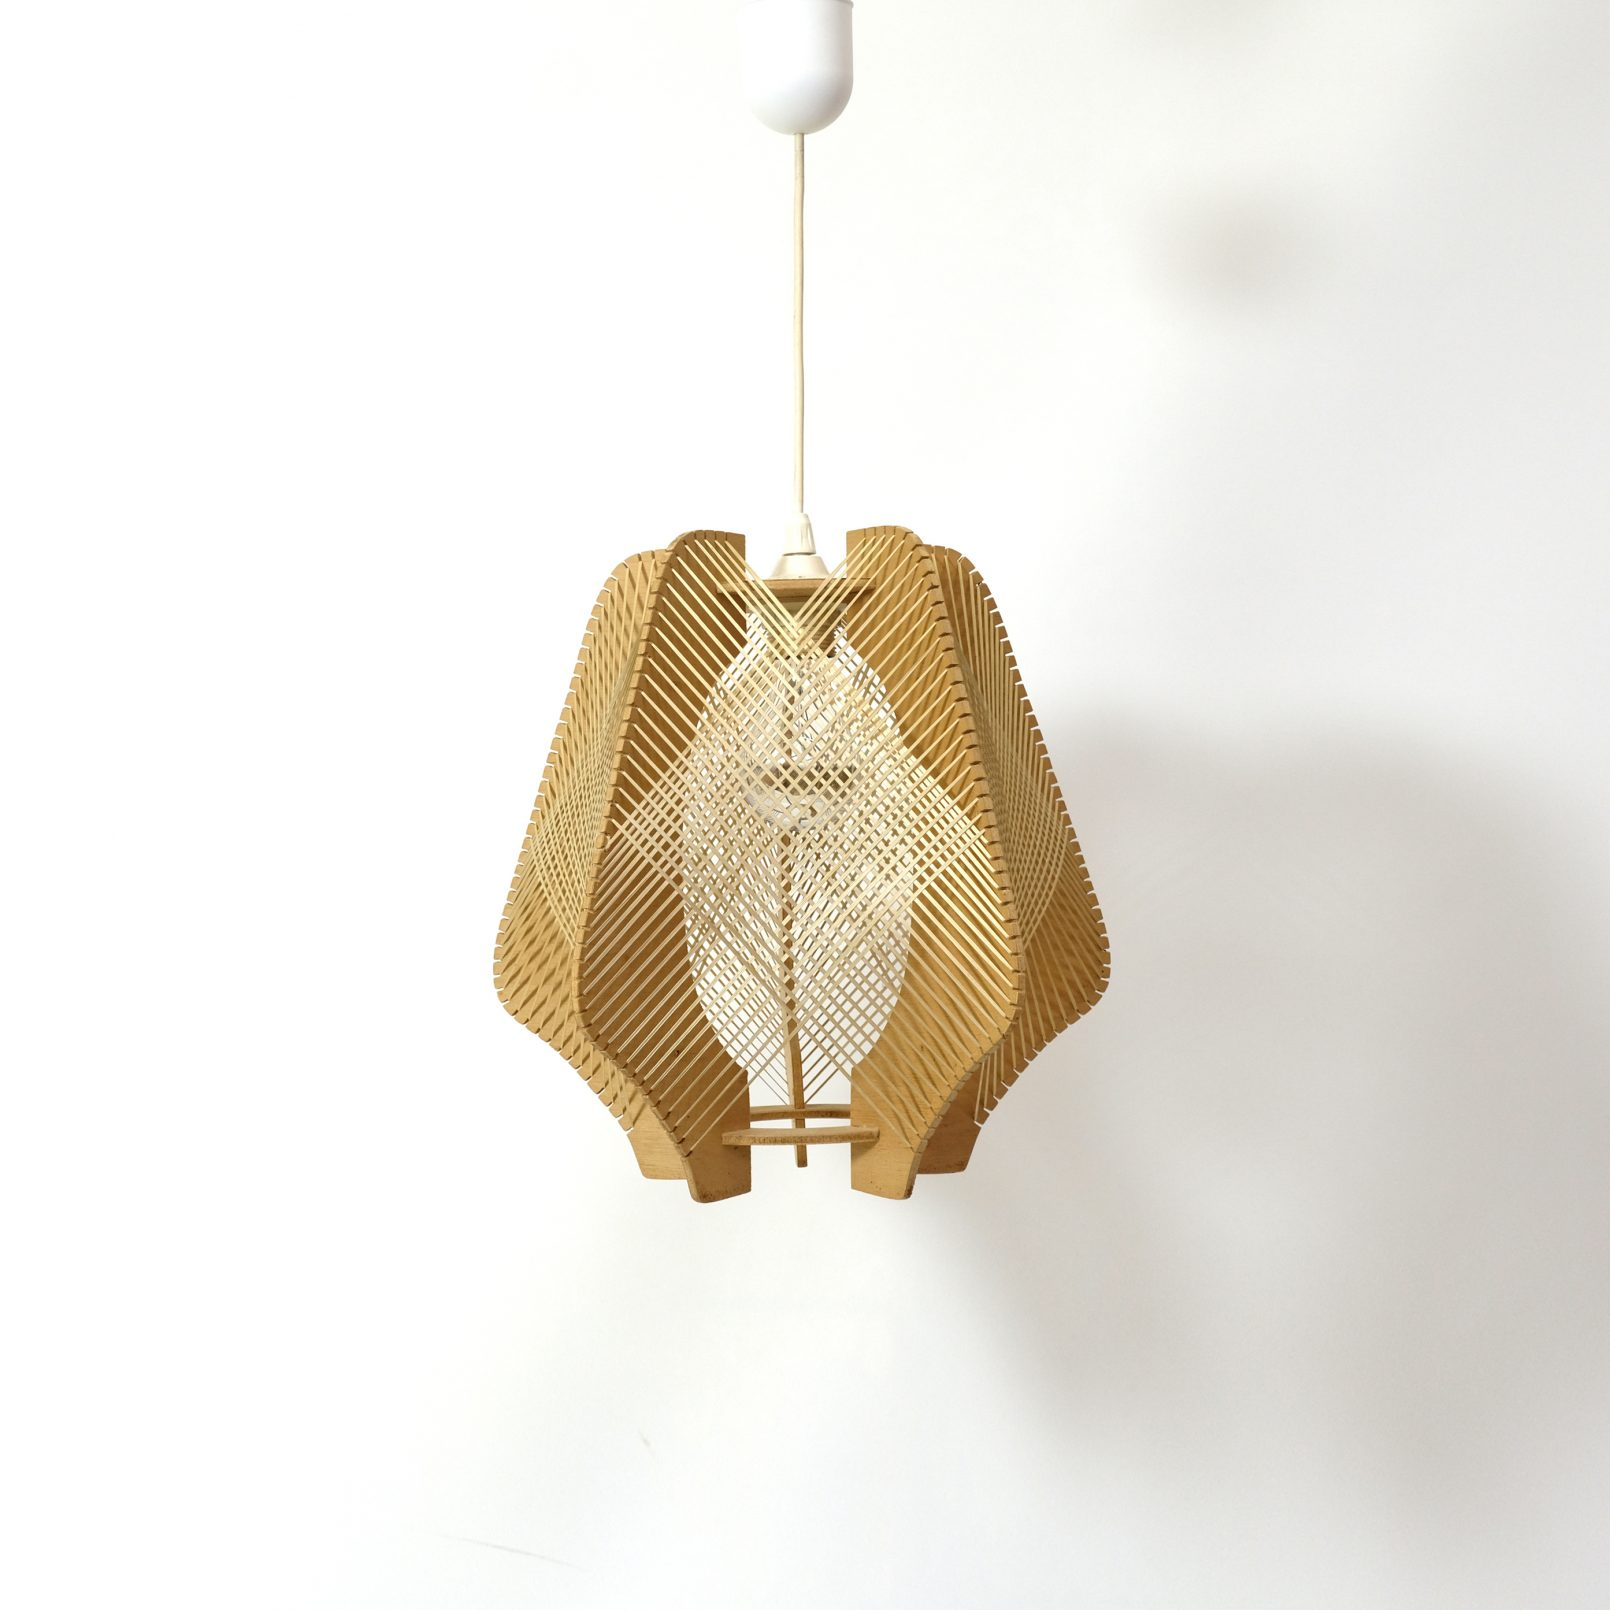 Vintage wood and string pendant from the 1960s-1970s.